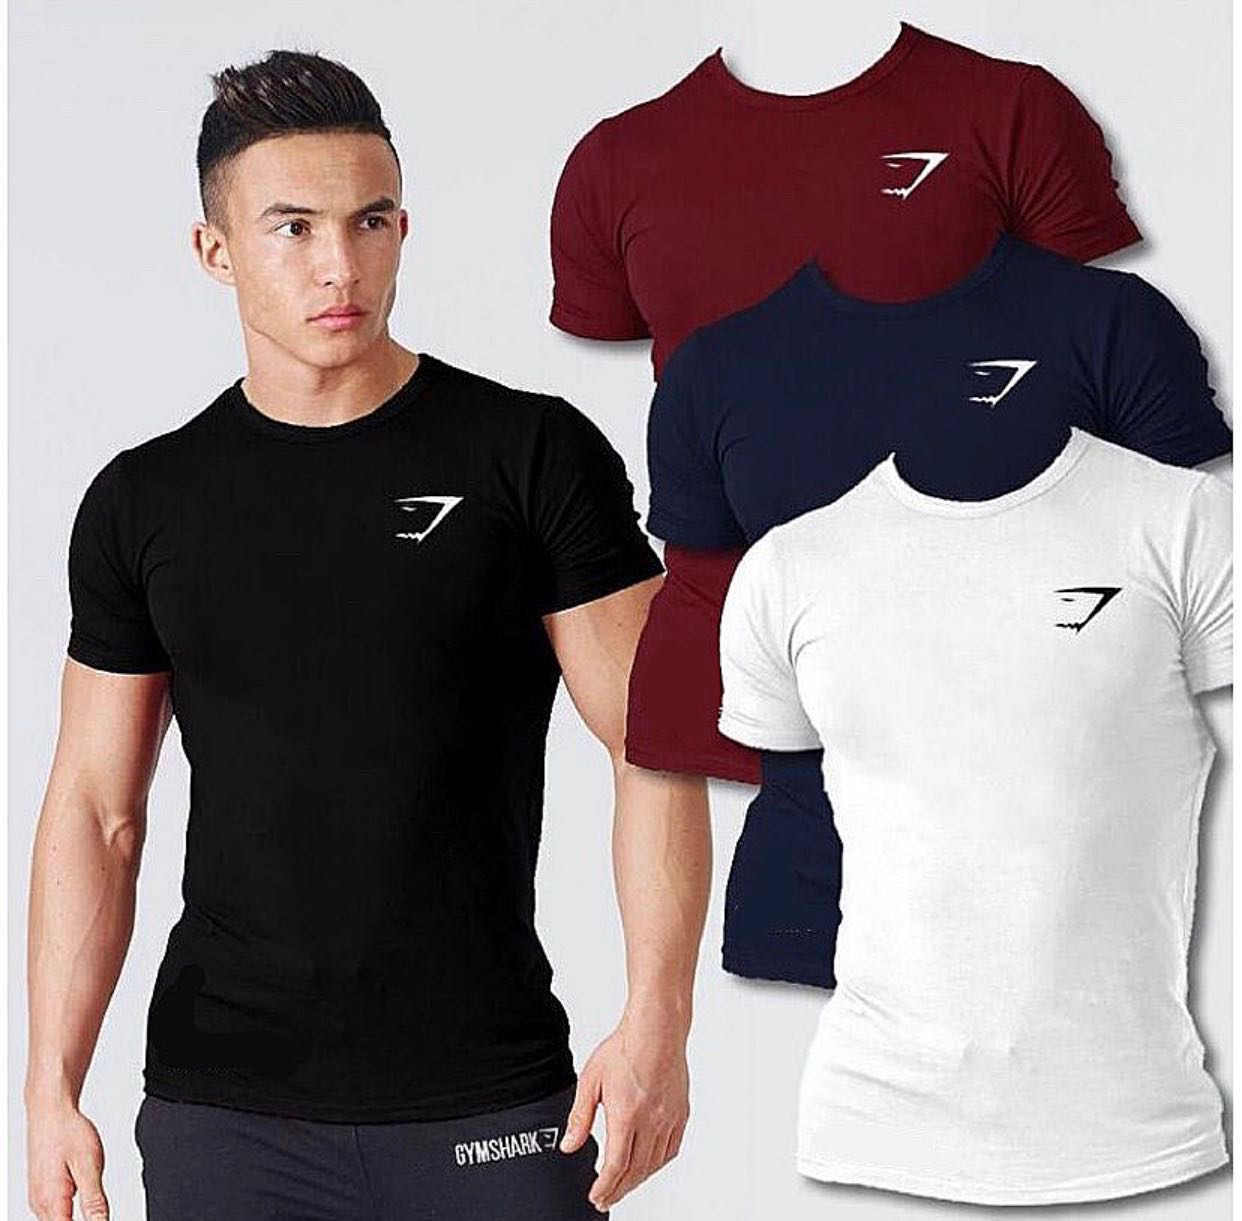 c936ec49d8d5 GYMSHARK Athletic Tee Shirt (PREORDER‼ ), Sports, Sports Apparel on ...